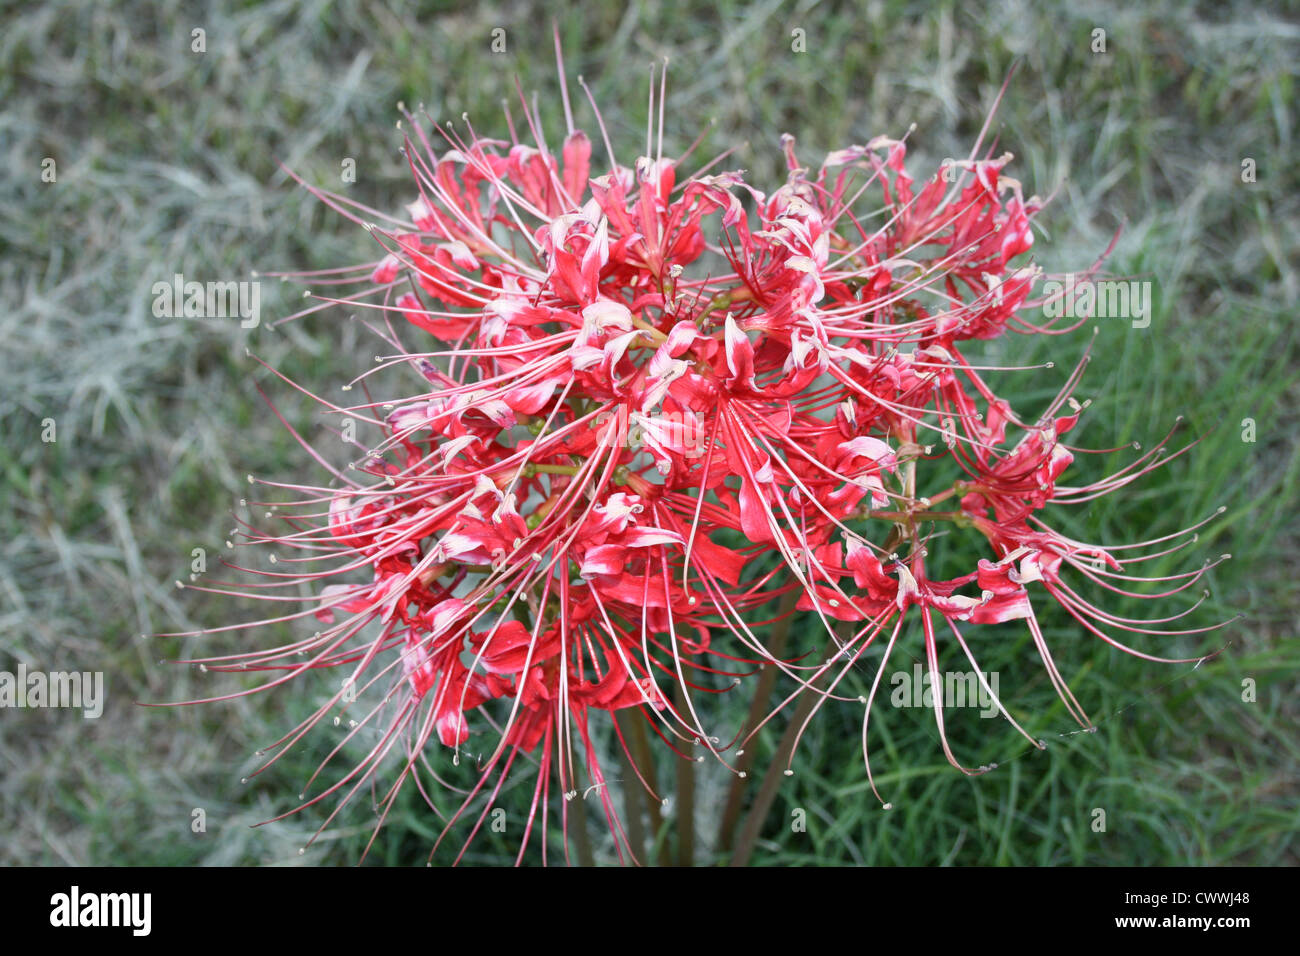 Red spider lily flower art photograph floral botanical flowers stock red spider lily flower art photograph floral botanical flowers photography izmirmasajfo Image collections